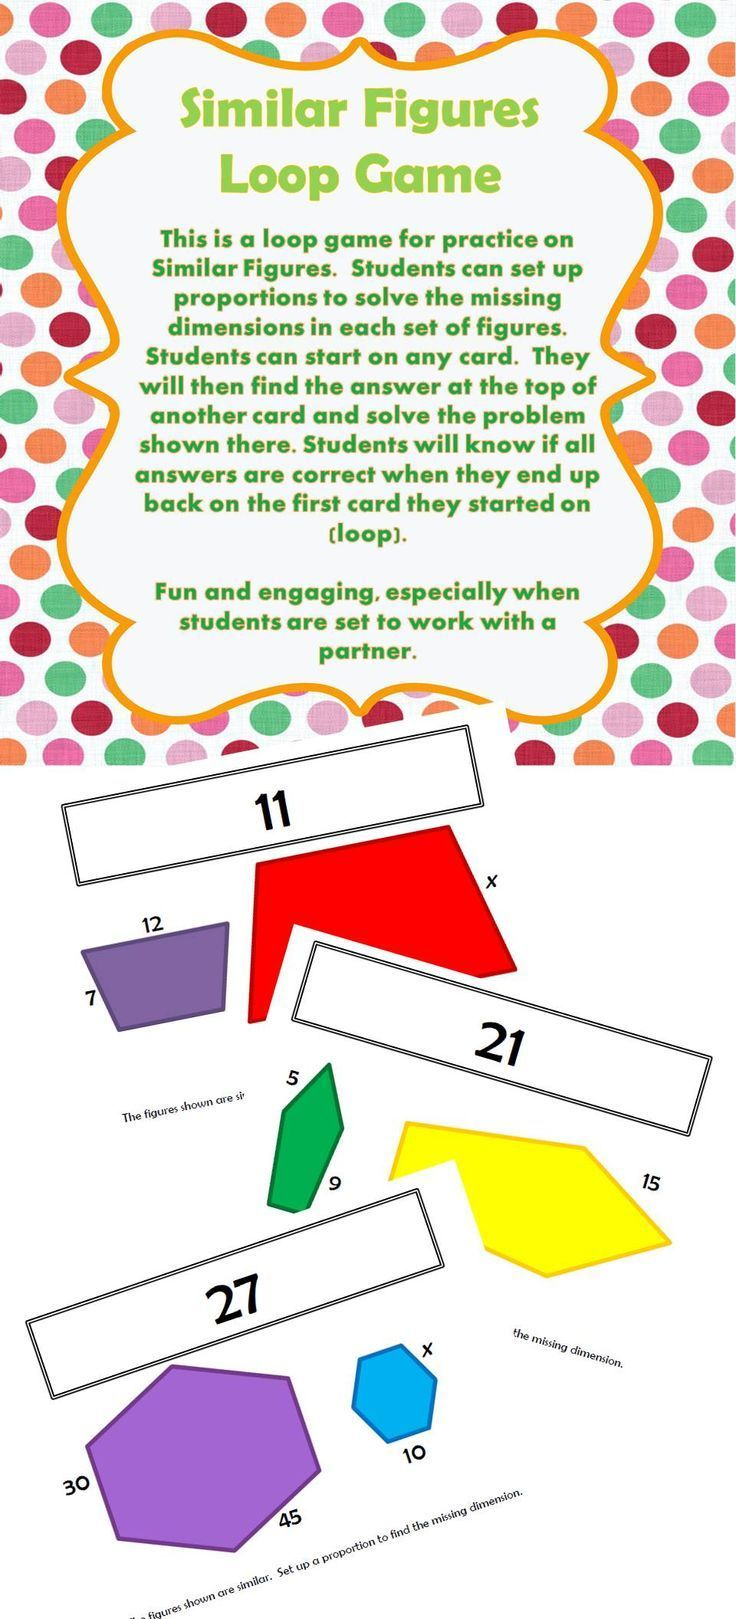 Similar Figures Loop Game   Includes similar figures set up in different orientations.